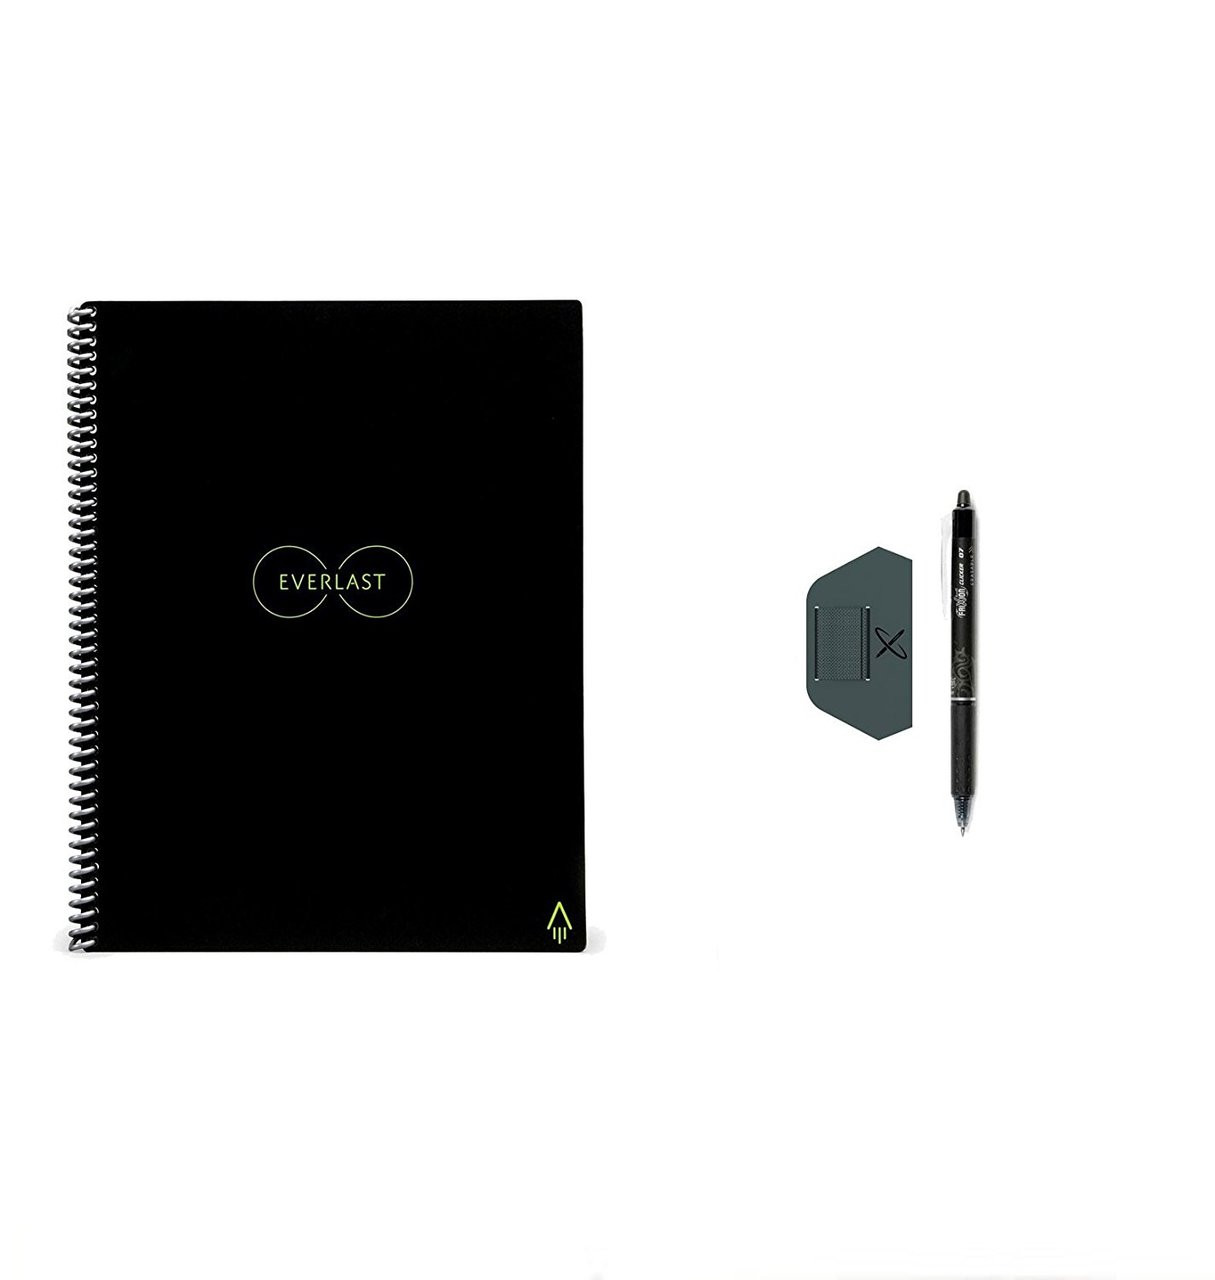 Rocketbook EverLast Letter - Smart Erasable, Reusable Wirebound Notebook with PenStation - Letter Size